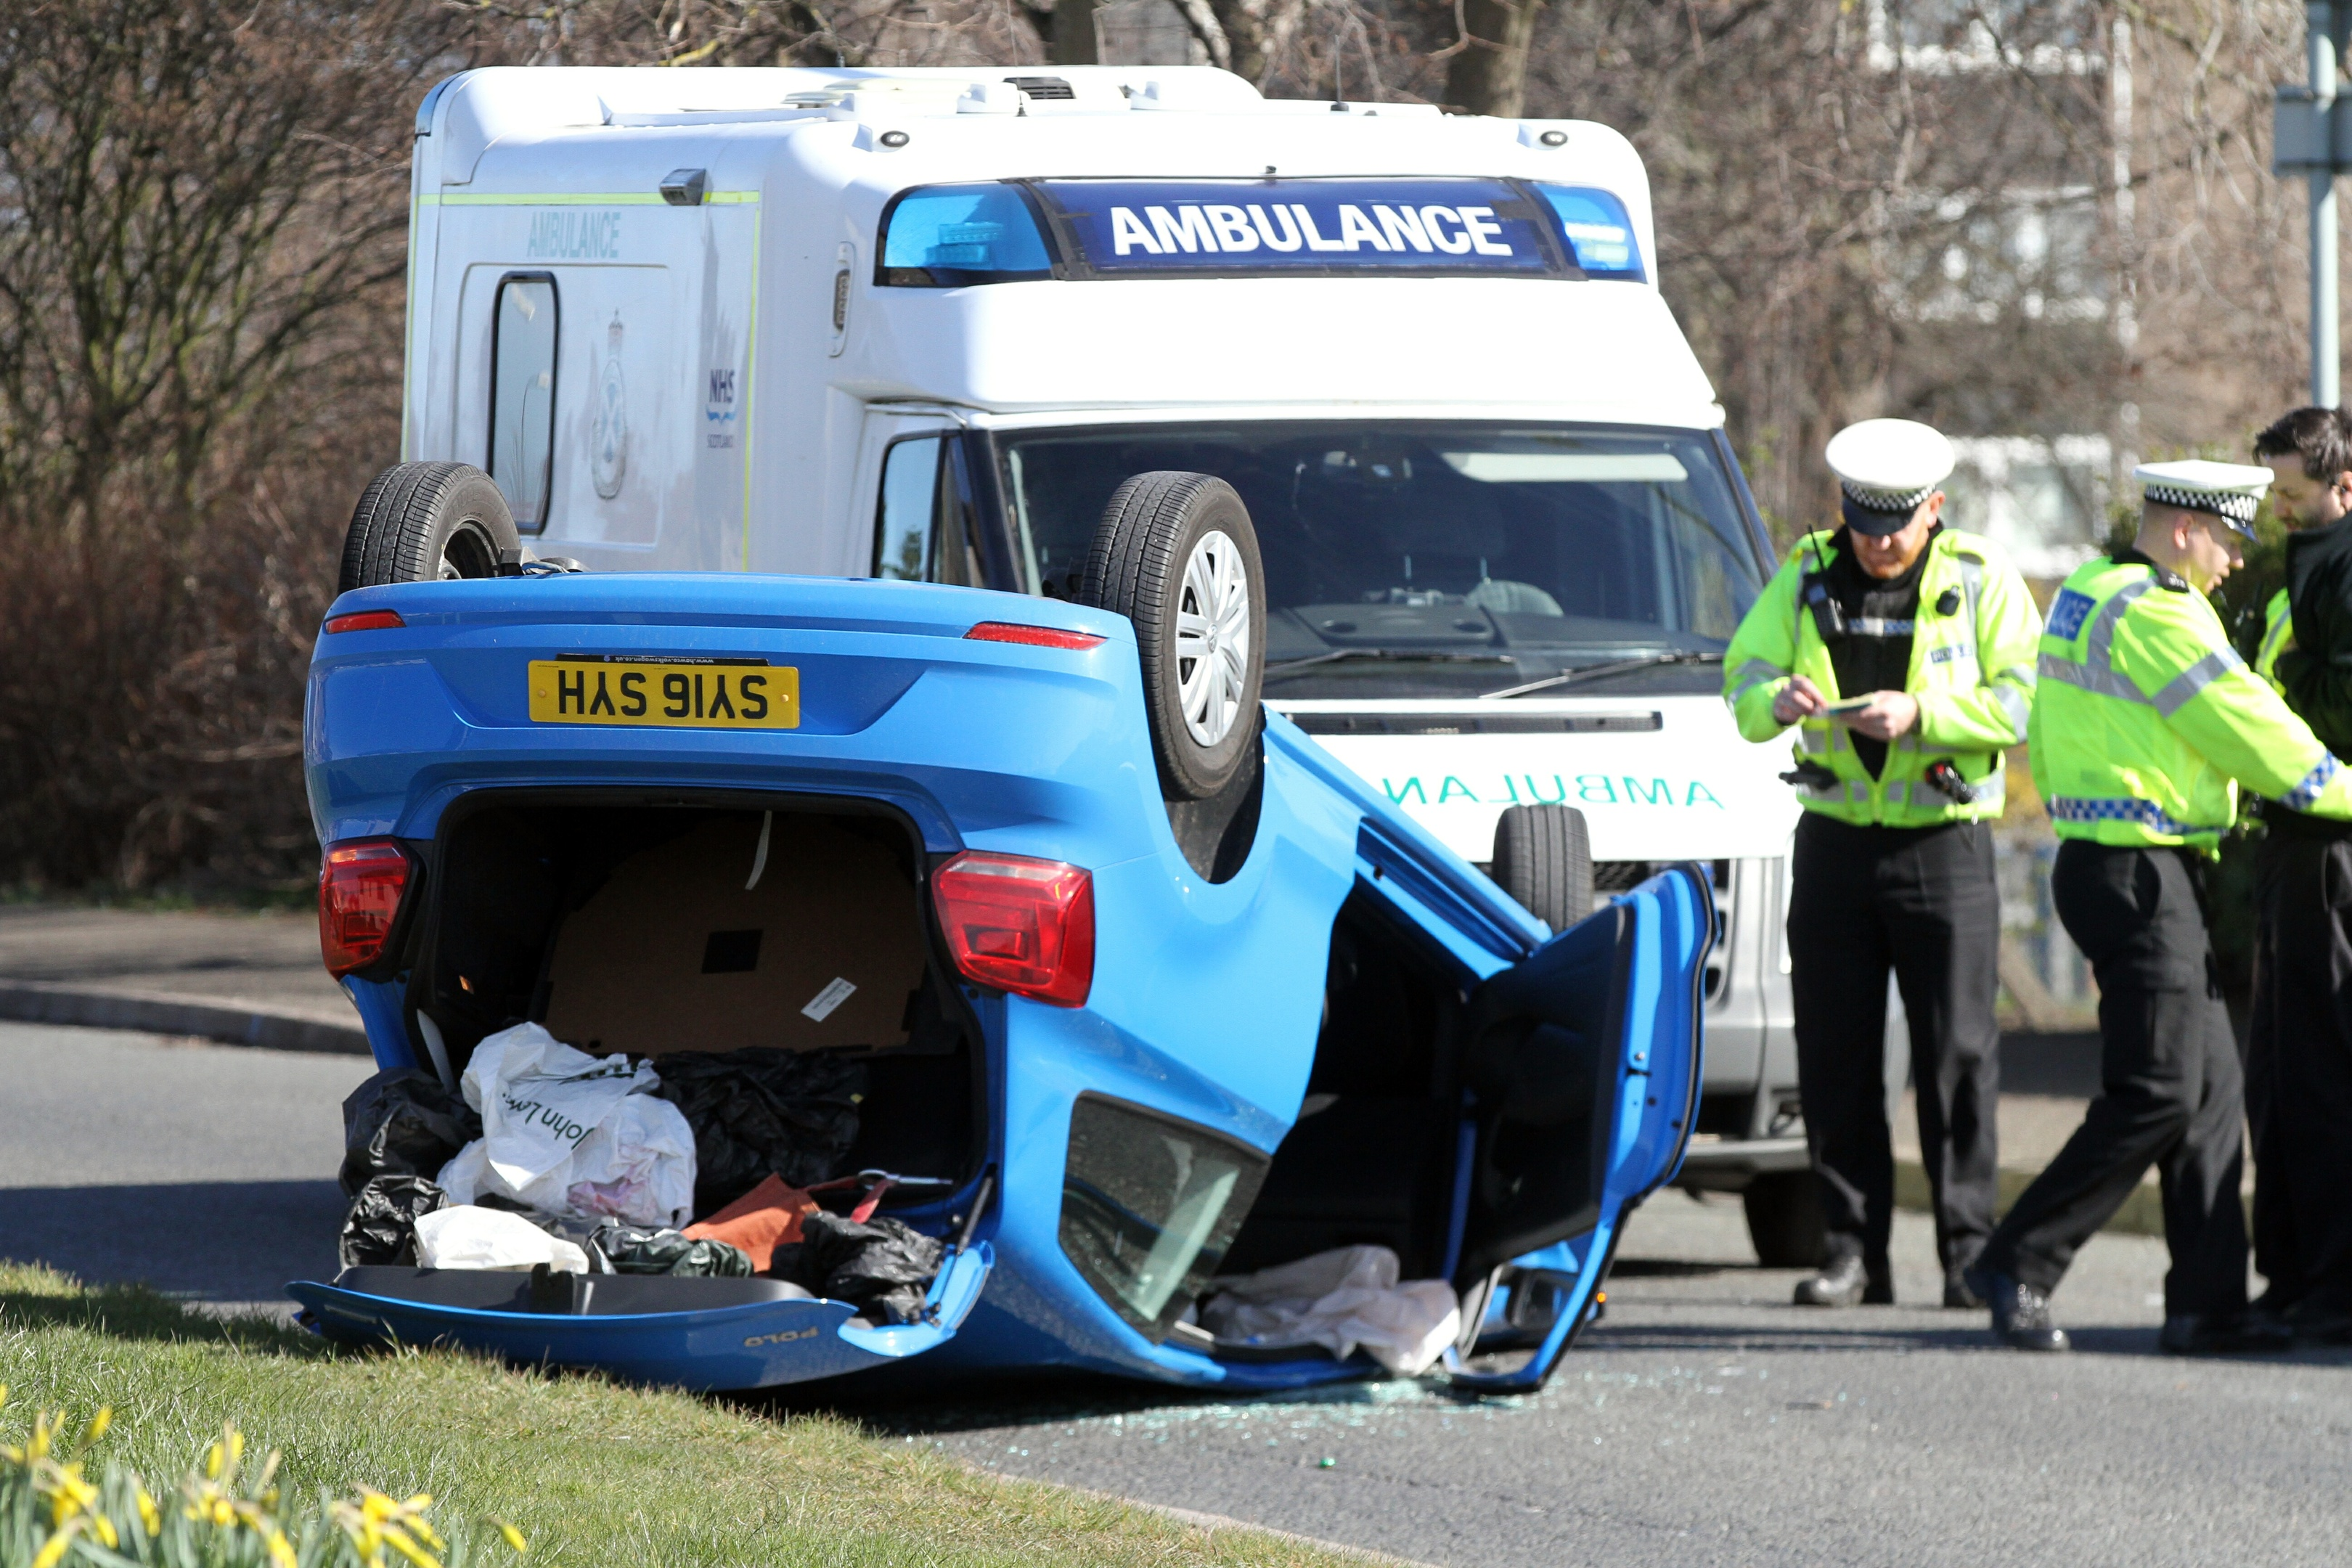 Dundee City Council want to improve accident rates on Dundee's roads further.